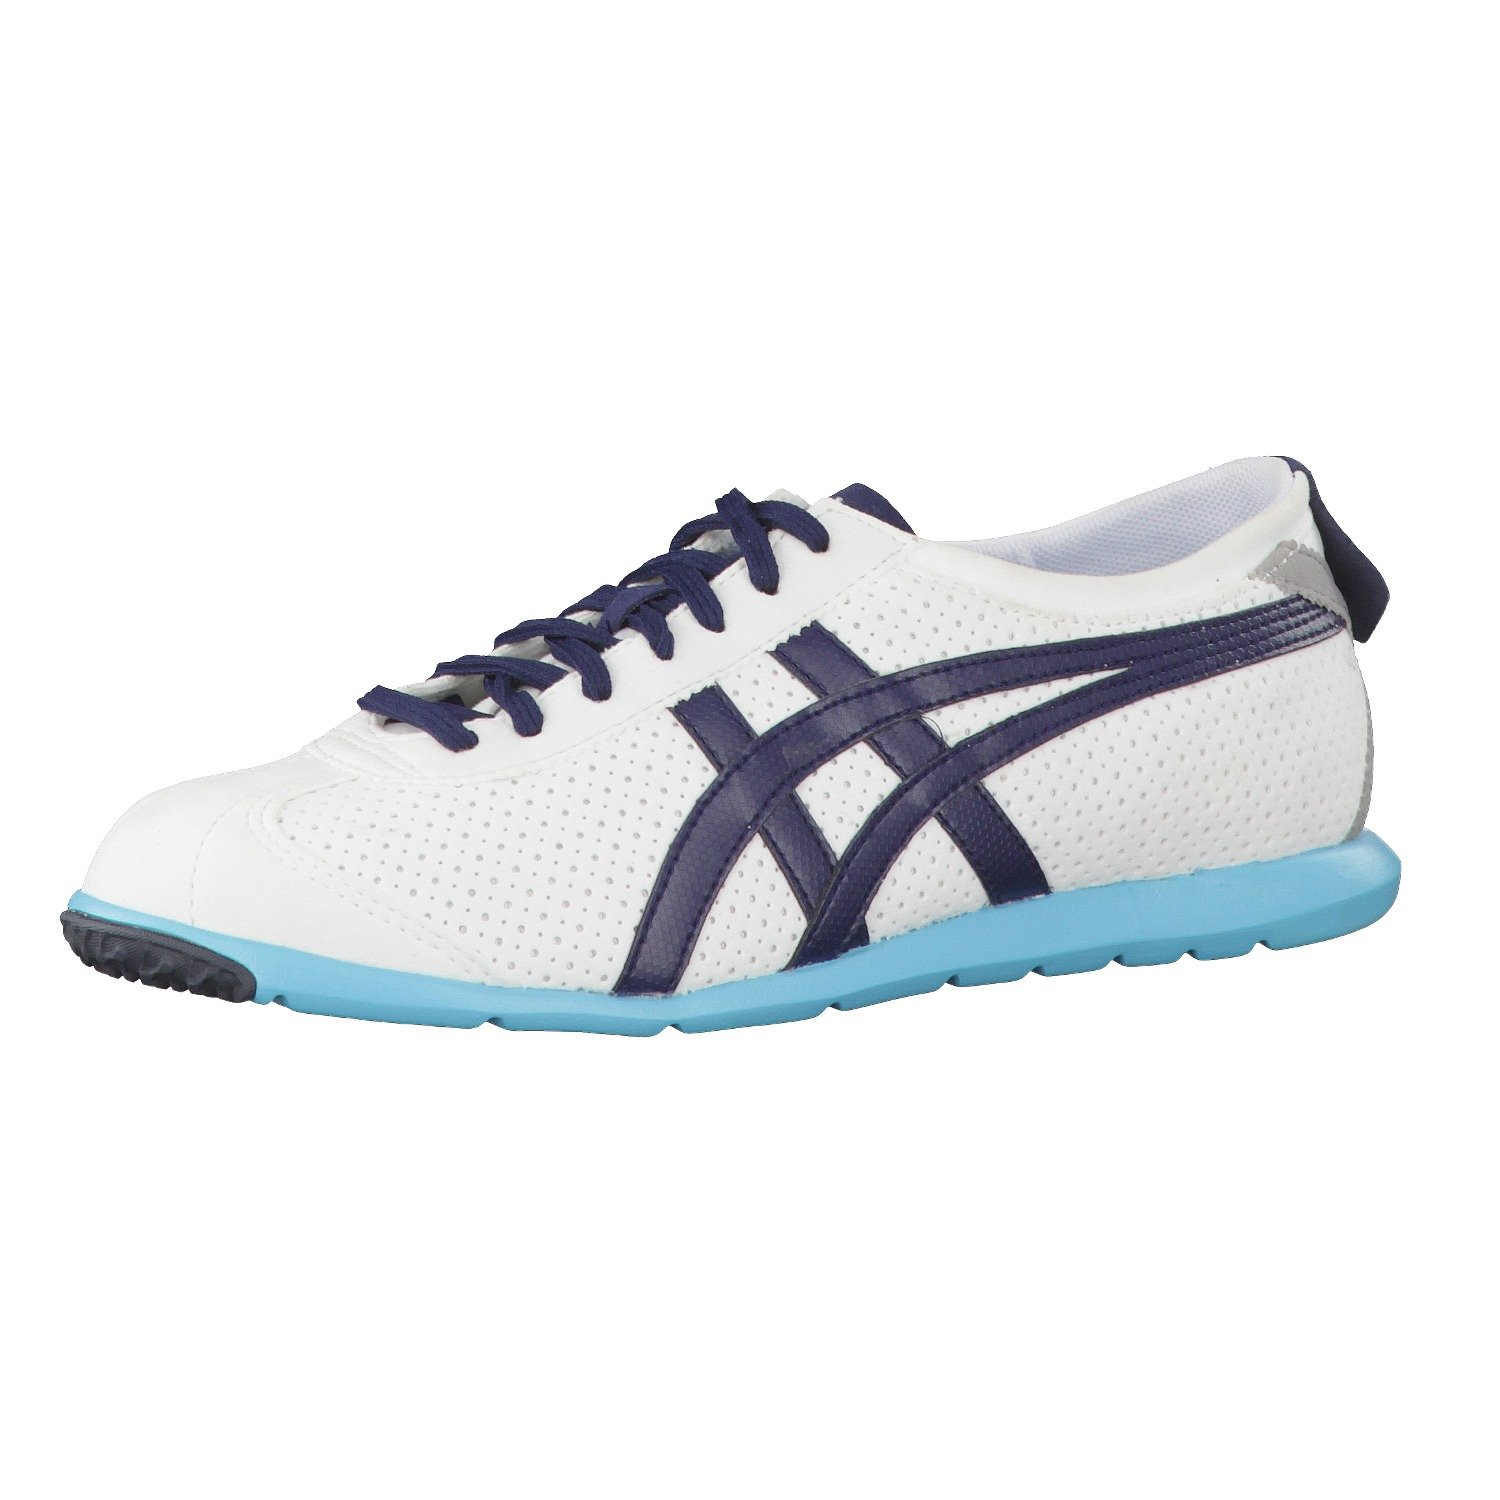 Onitsuka Tiger Rio Runner Trainers